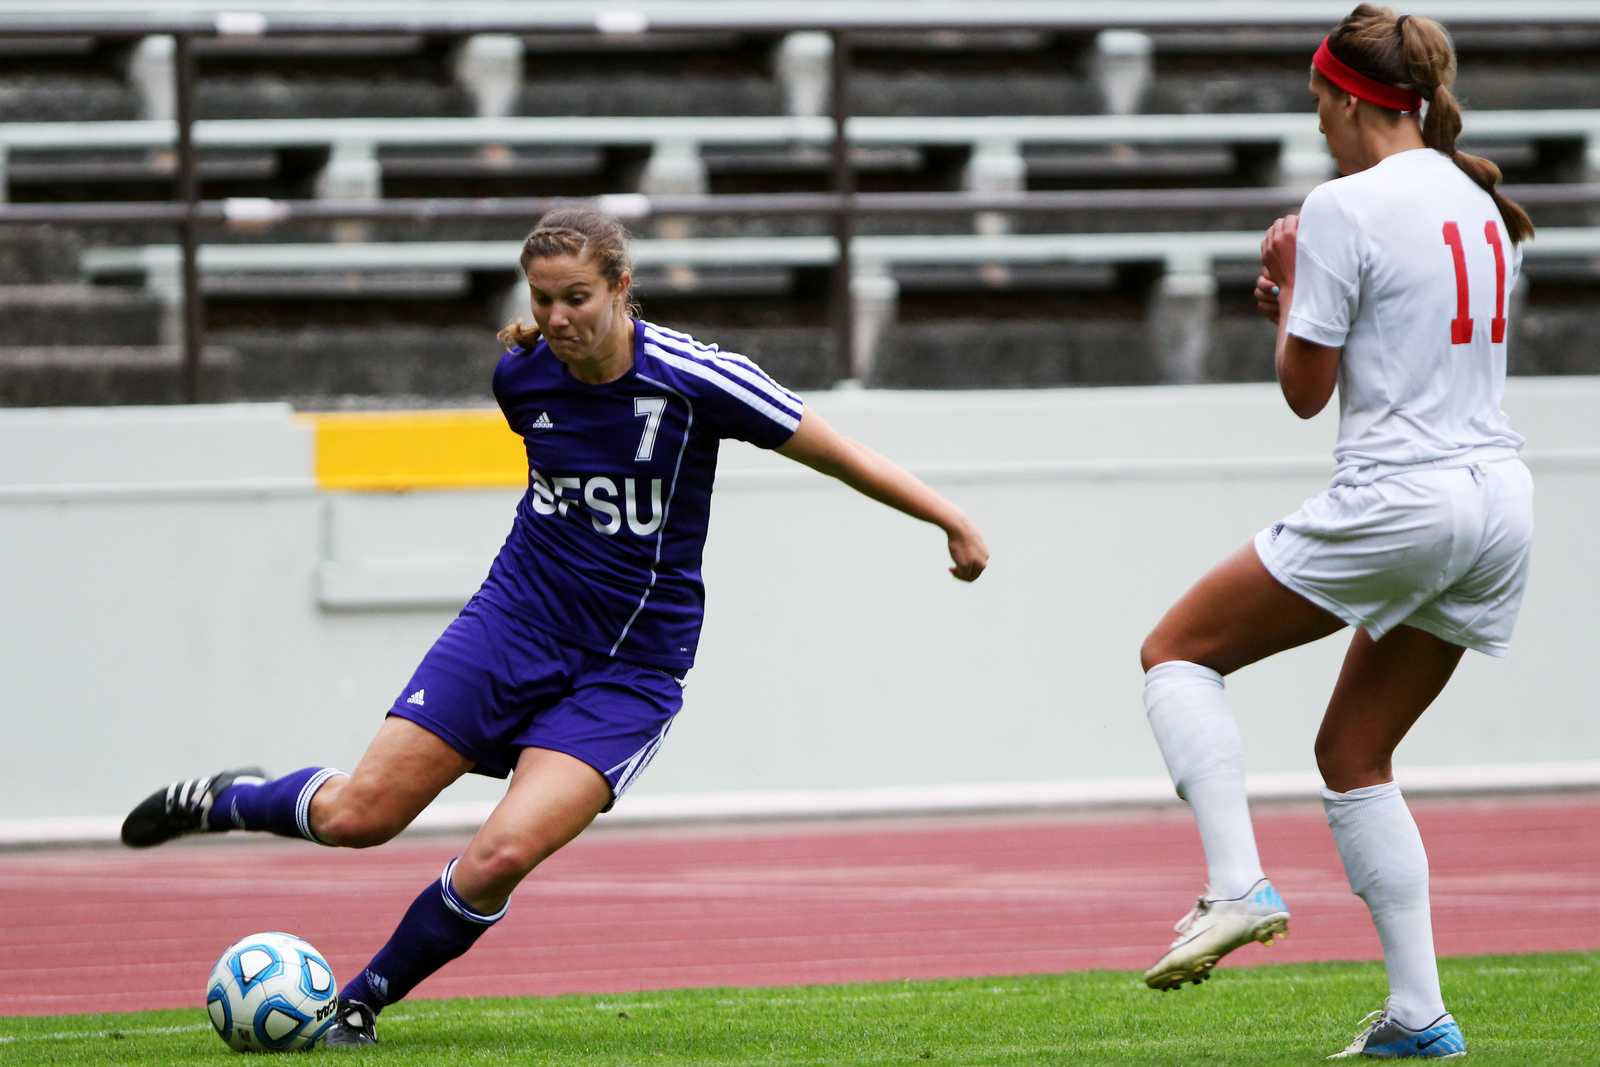 Mari Mendizabal (7) kicks the ball past Rachel Crawford(11) during a game featuring the SF State Gators vs the Western Oregon University Wolves at Cox Stadium on September 11, 2013. The Gators tied the Wolves in the second half of the game, the final score was 1-1. Photo by Gavin McIntyre / Xpress